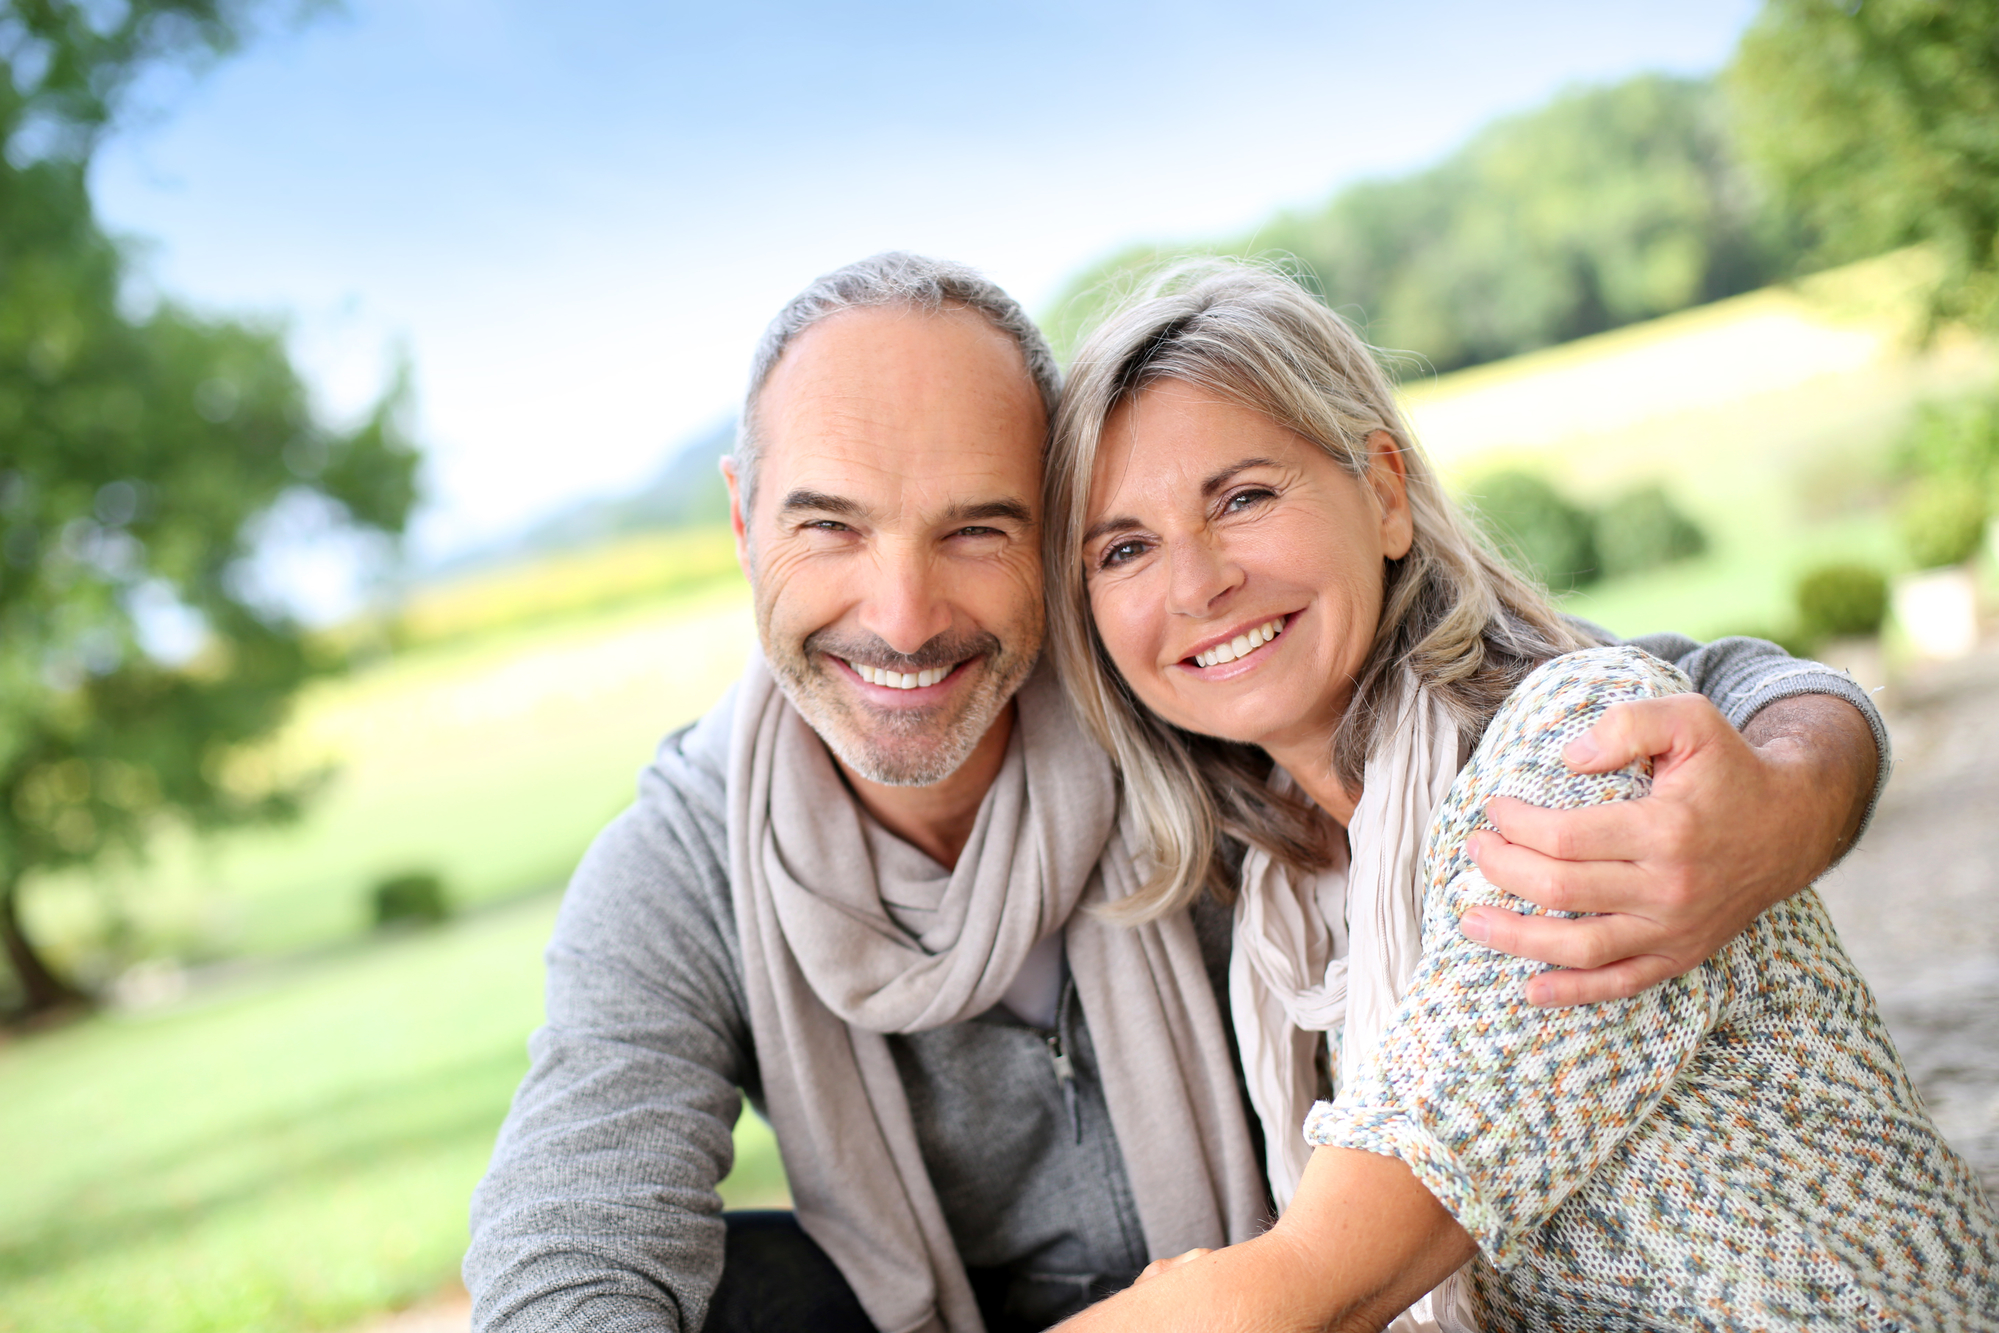 How do dentures compare to dental implants in Boca Raton?